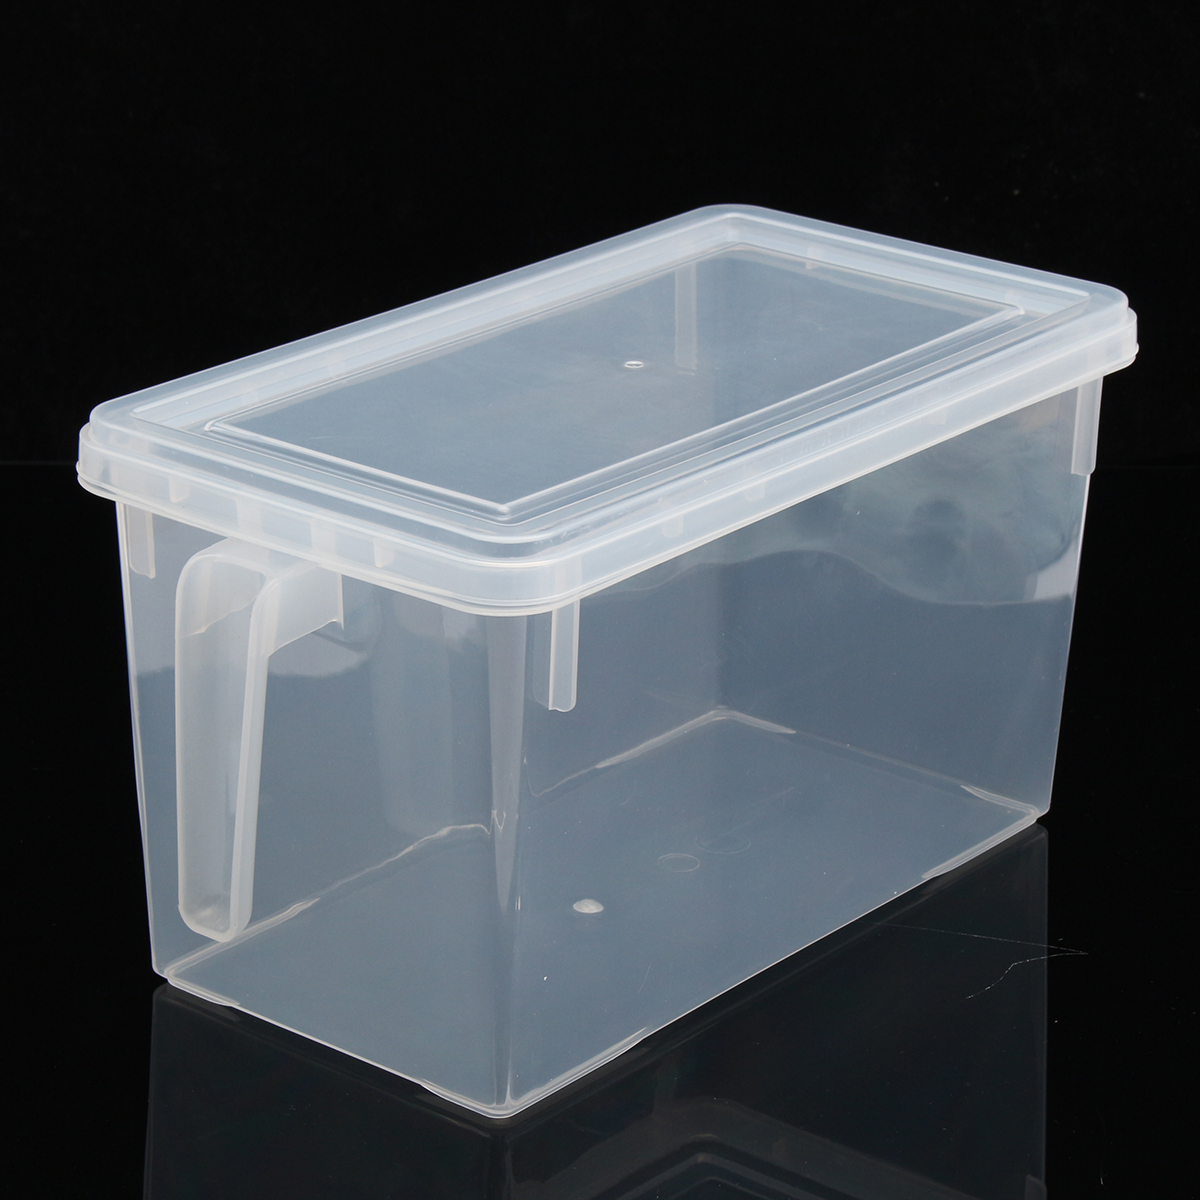 4.7L Clear Organizer Storage Bin With Handle Idear For